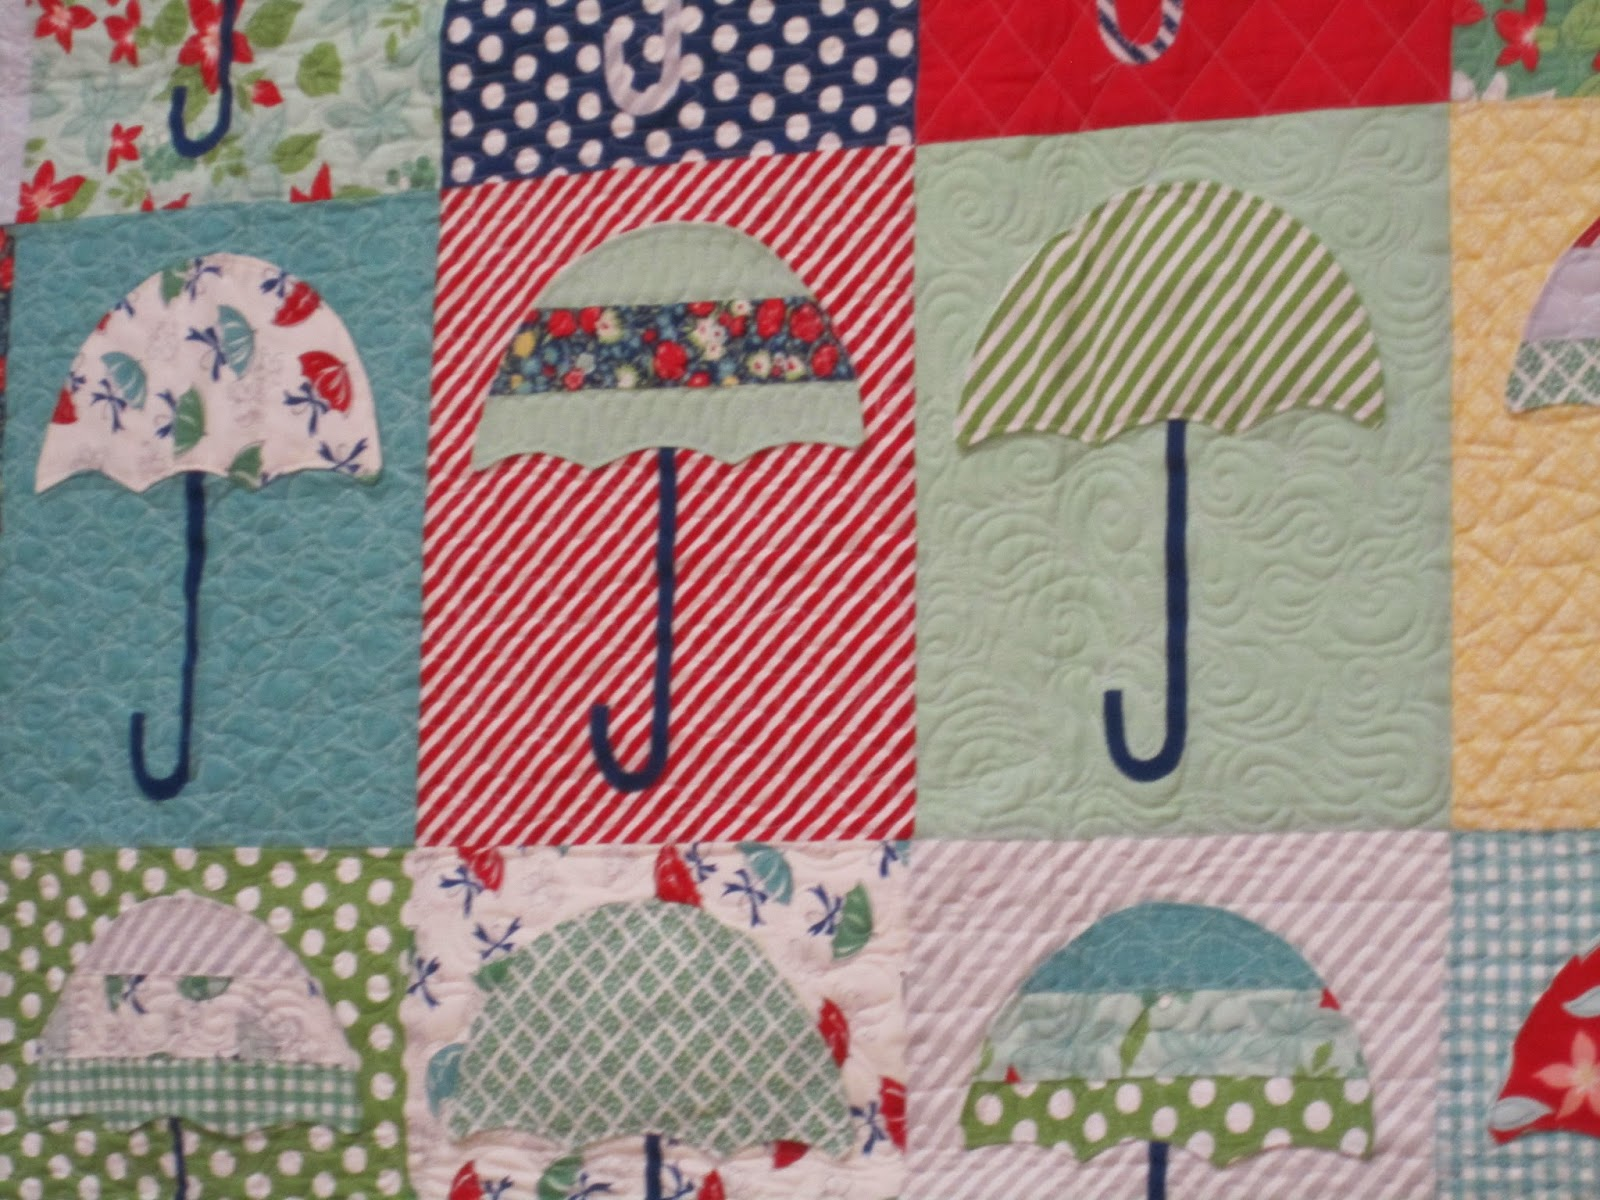 camille roskelley's machine quilting, raincheck, april showers